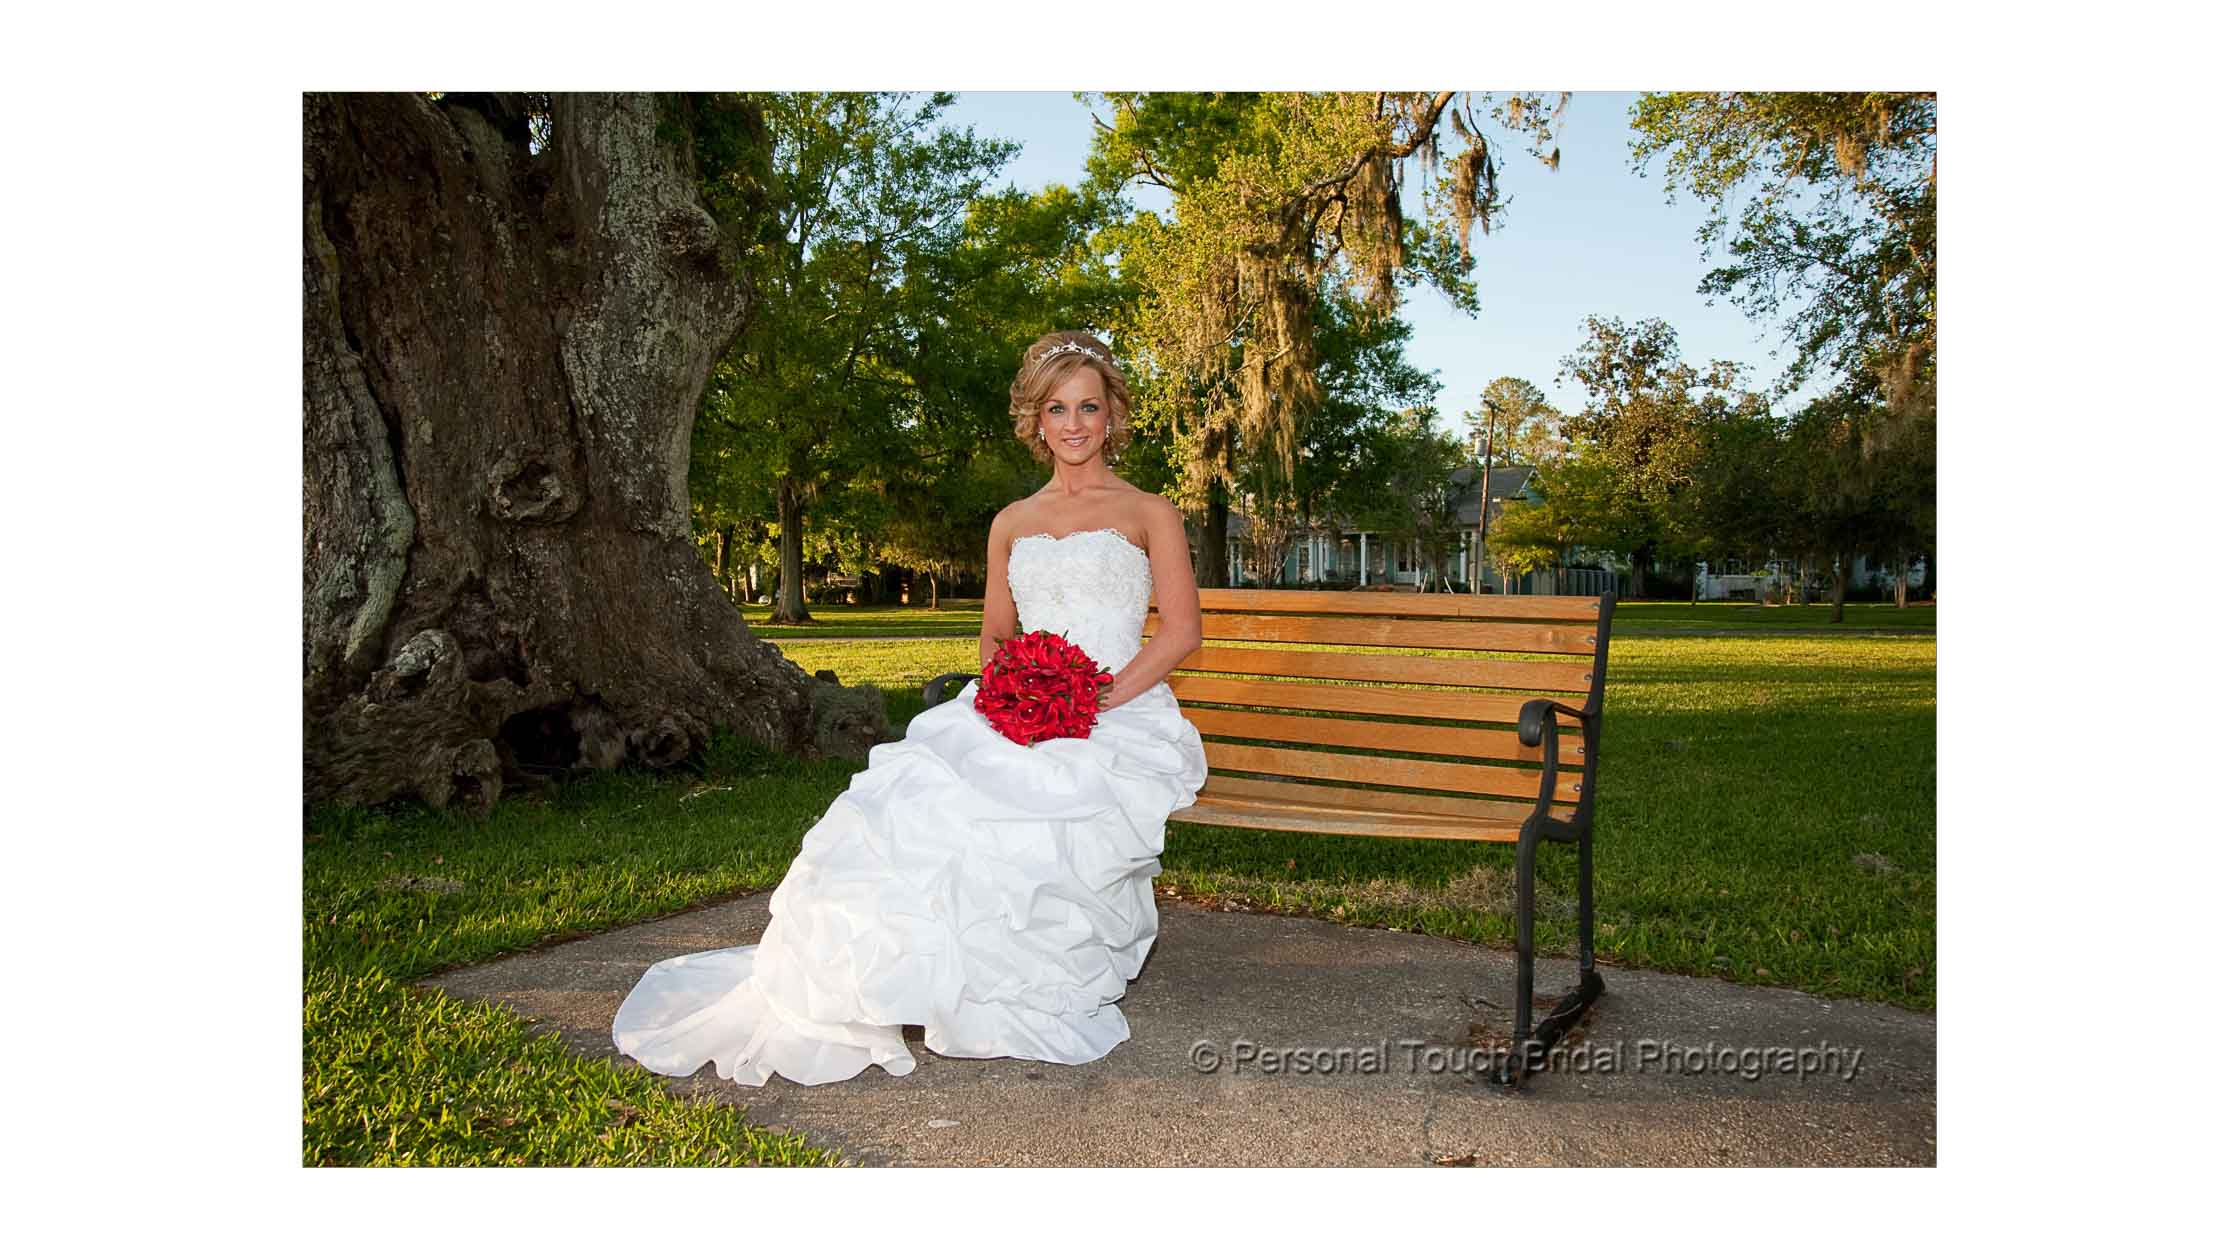 Personal Touch Divi Bridals-01